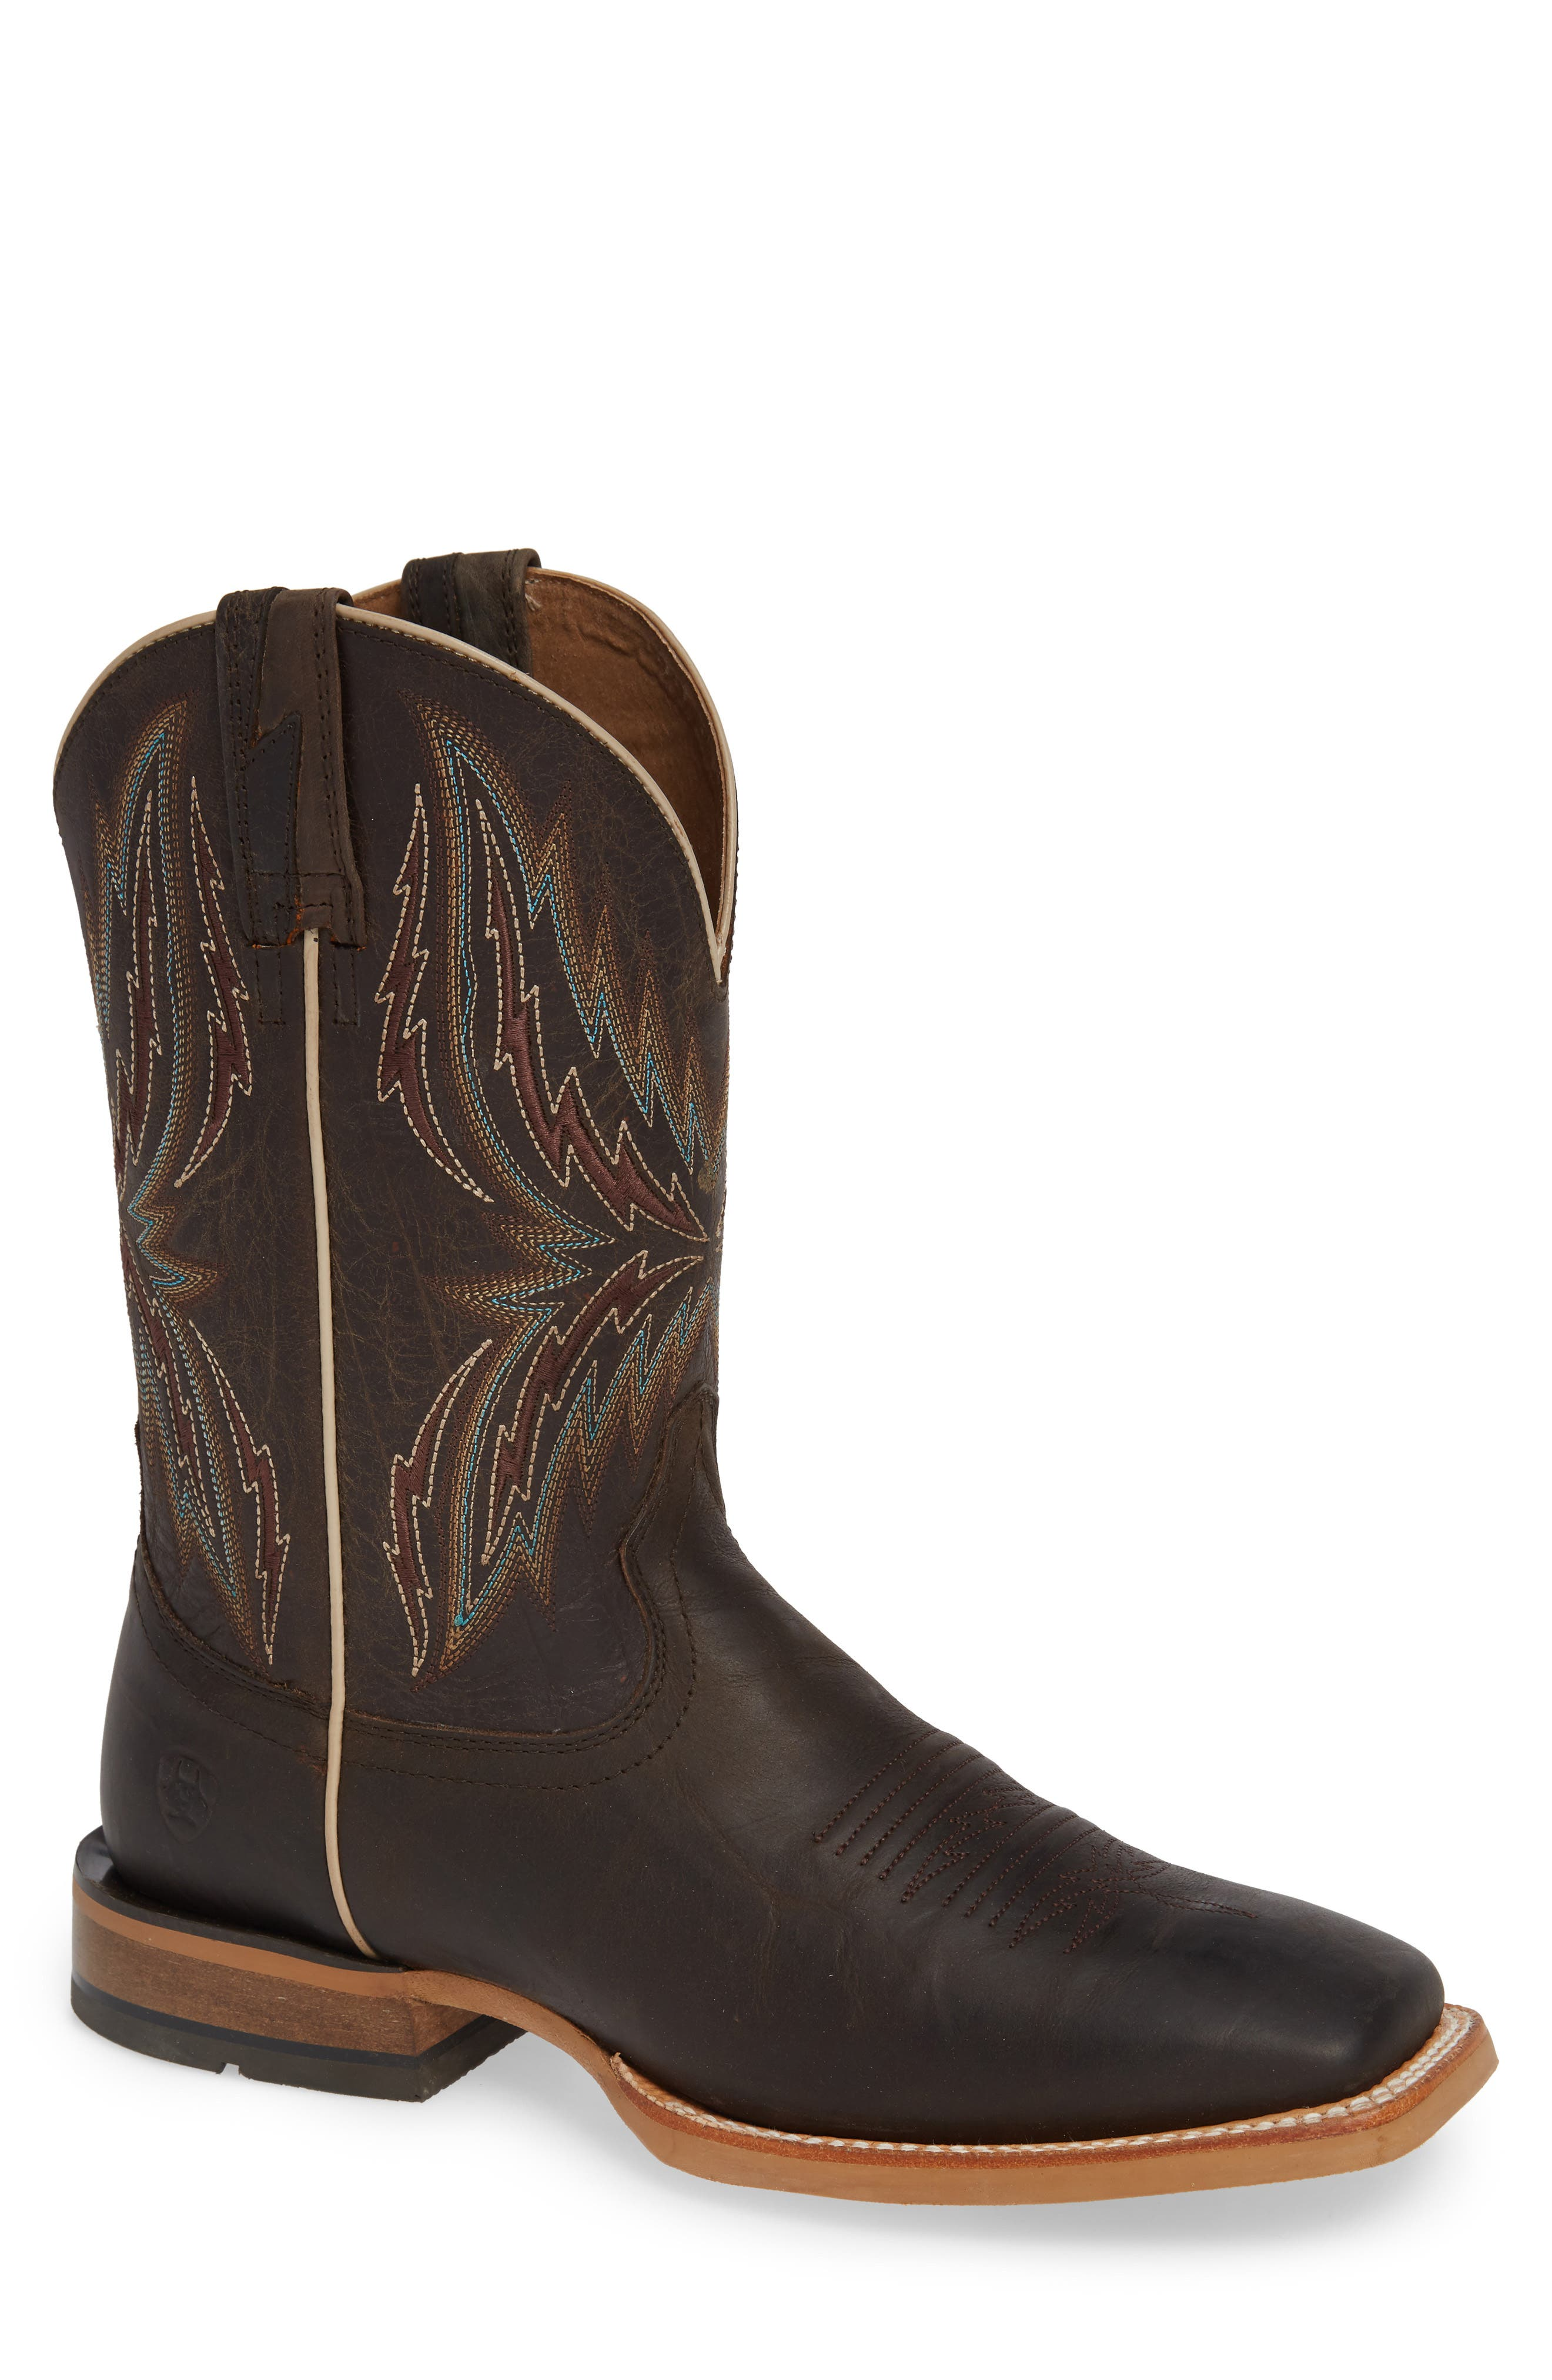 ARIAT Arena Rebound Cowboy Boot, Main, color, 200